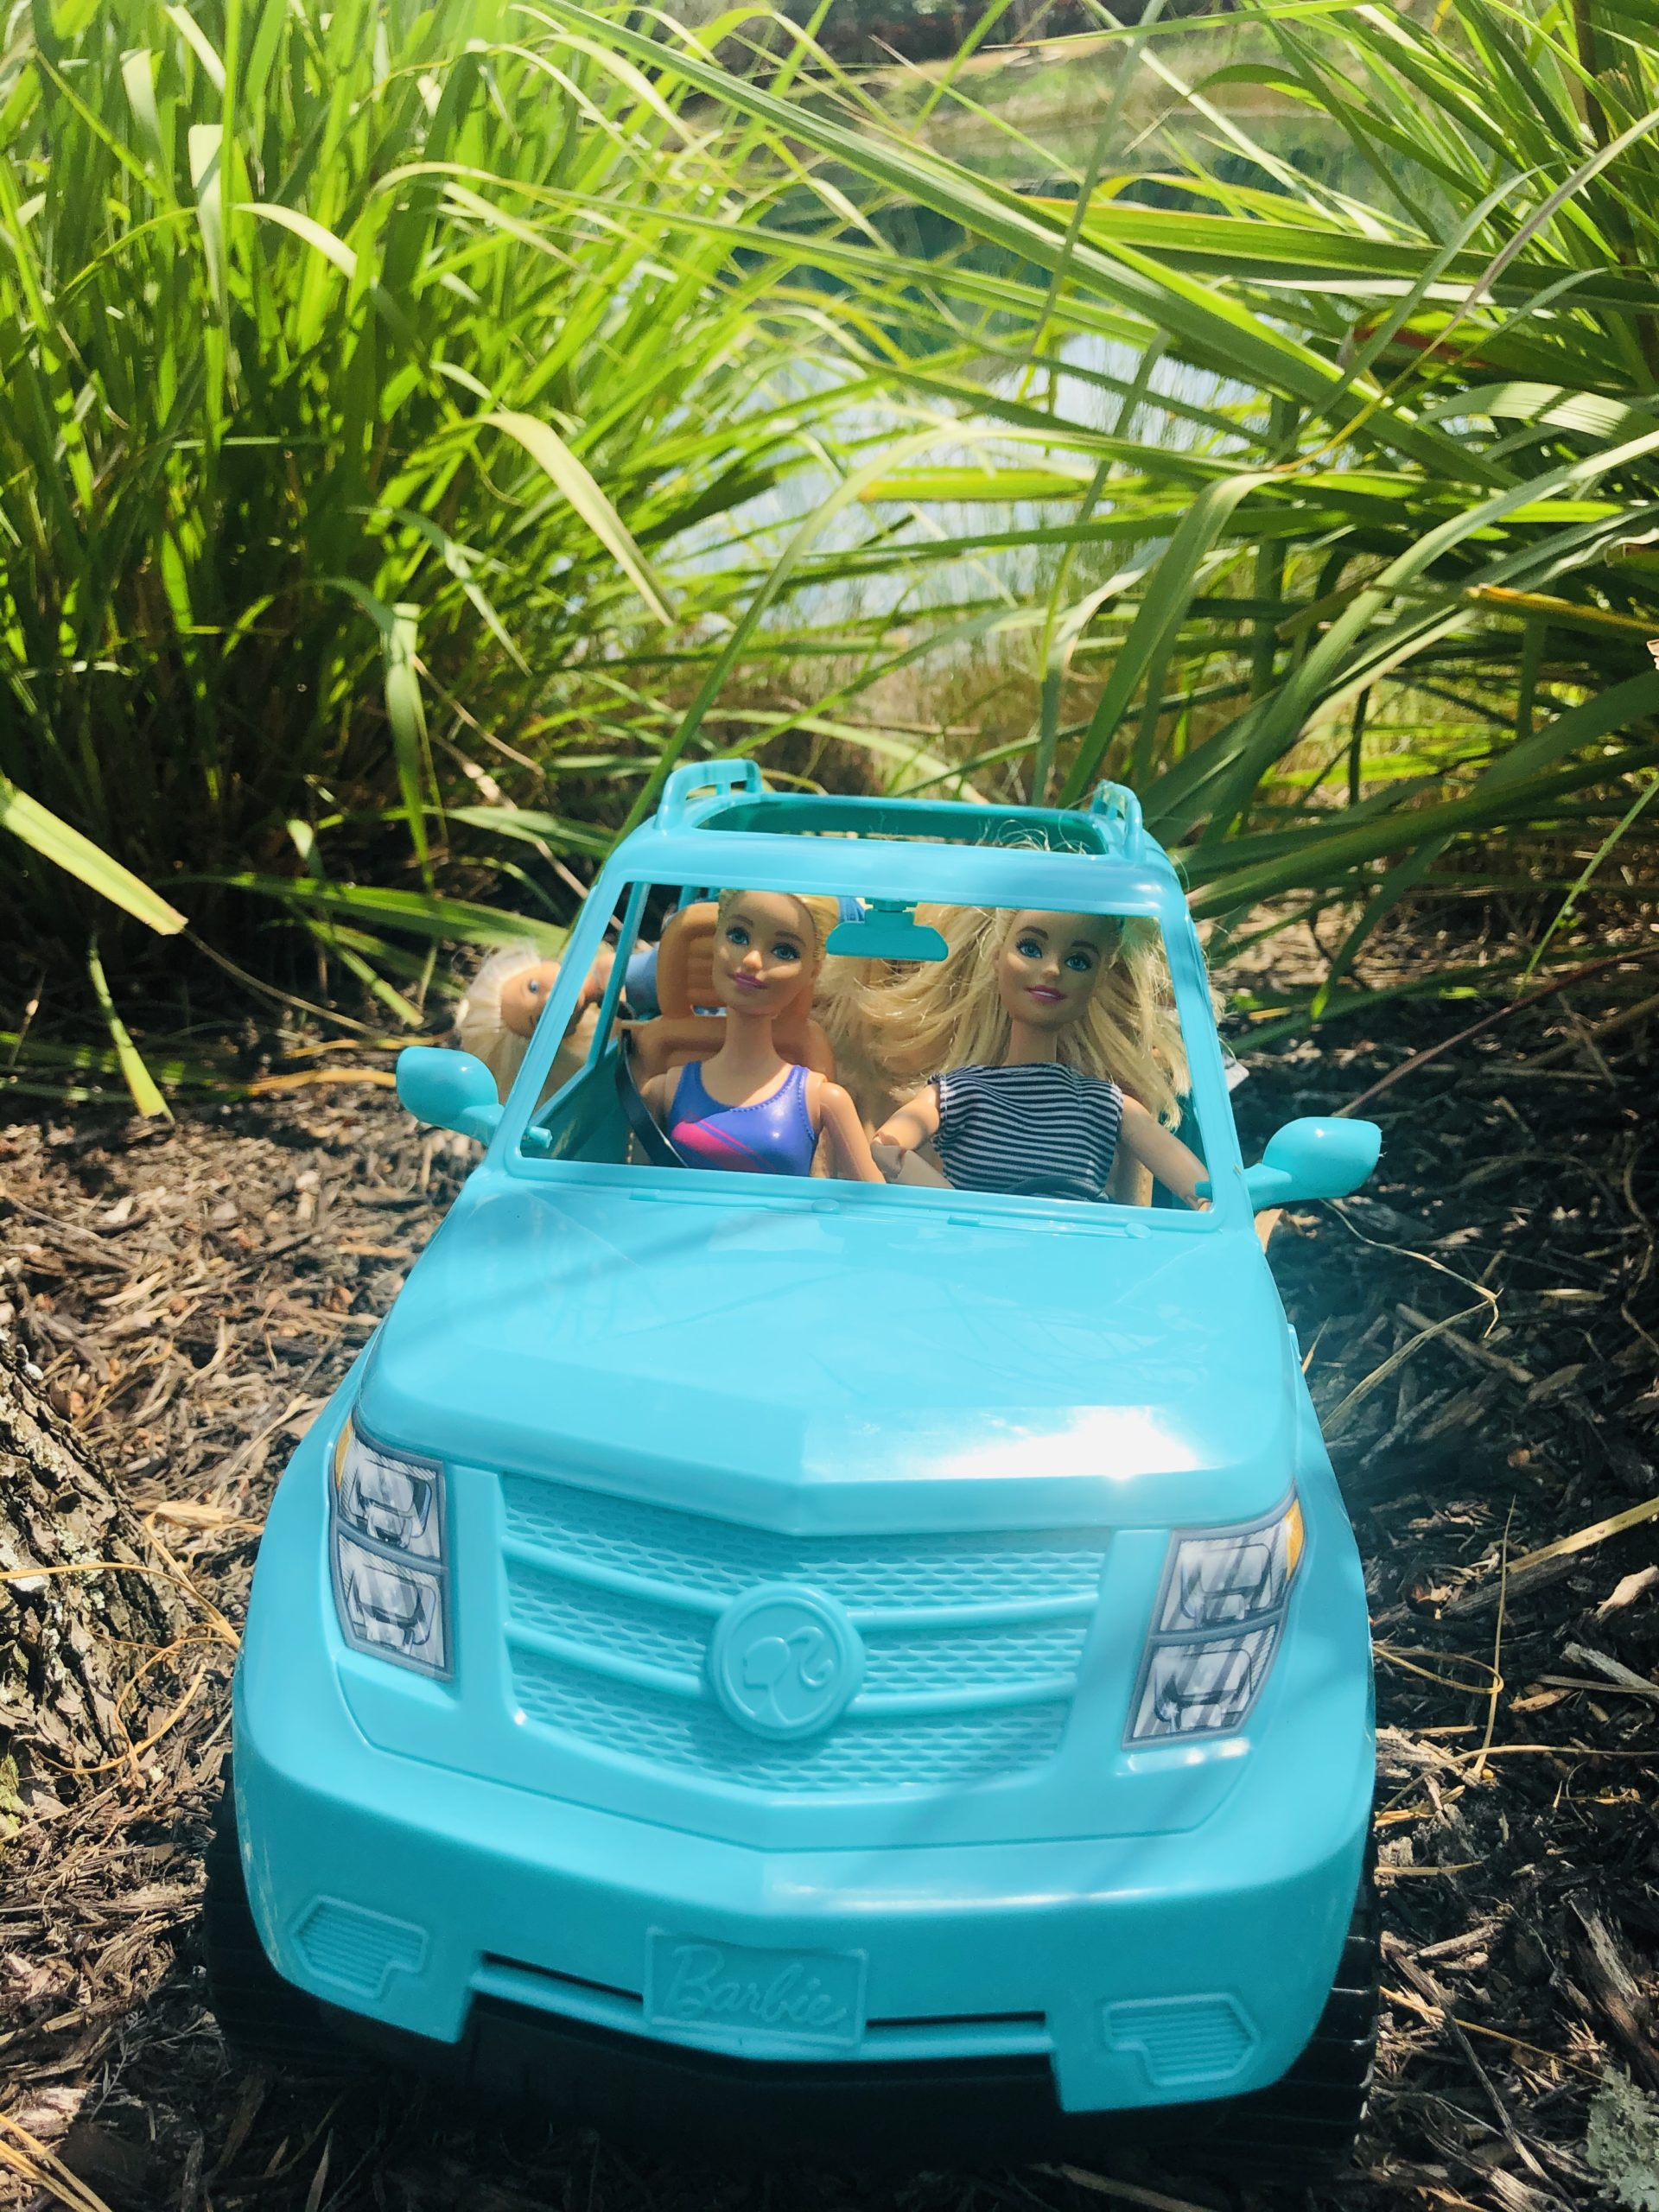 Teal Barbie Jeep with 2 Barbie dolls and 2 Chelsea Dolls in it. Background is a jungle.